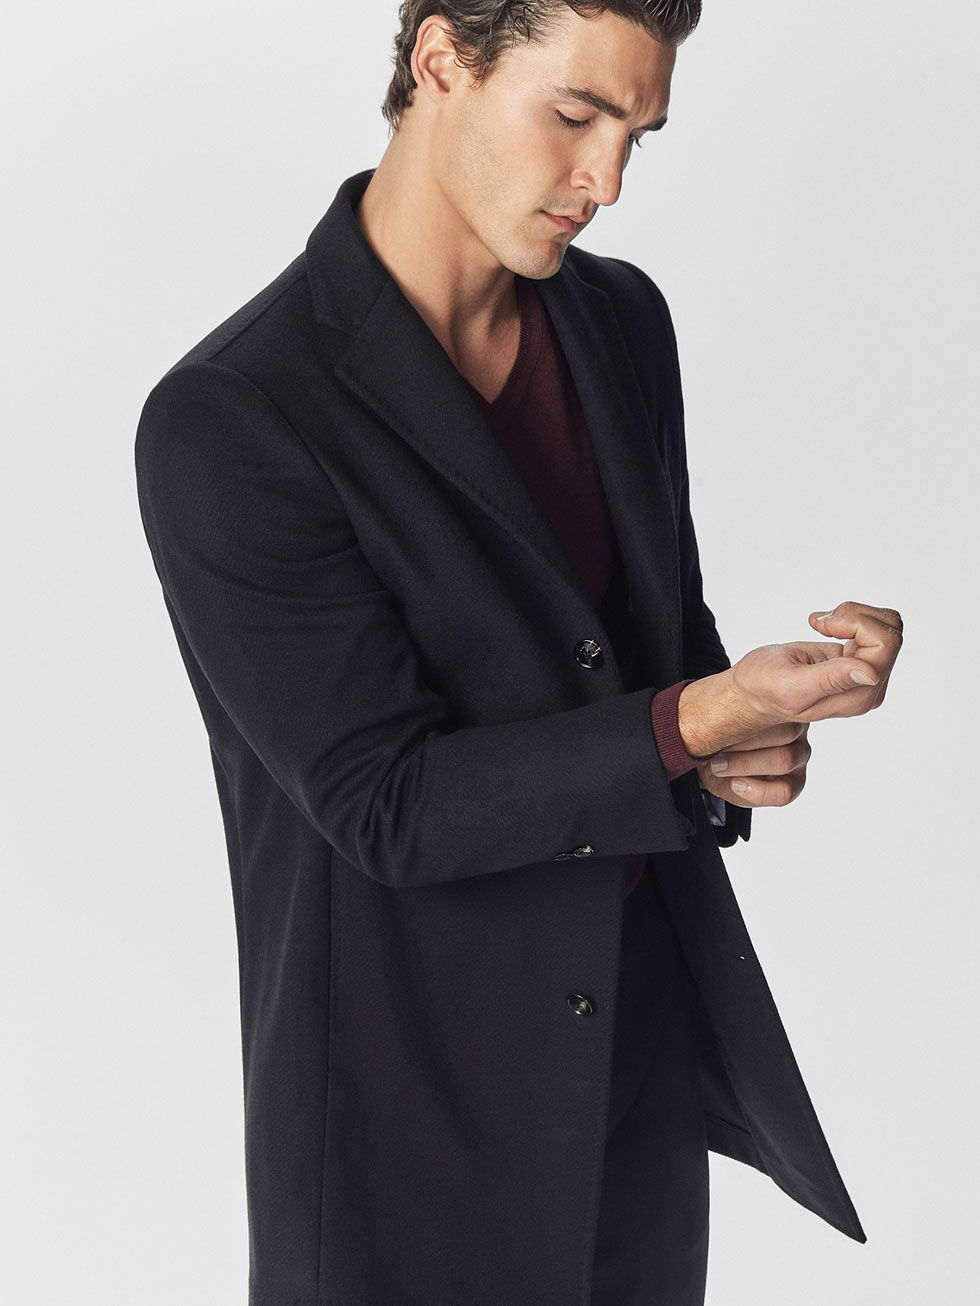 Autumn winter 2016 MEN´s SMART CASHMERE/WOOL COAT at Massimo Dutti for 241.5. Effortless elegance!